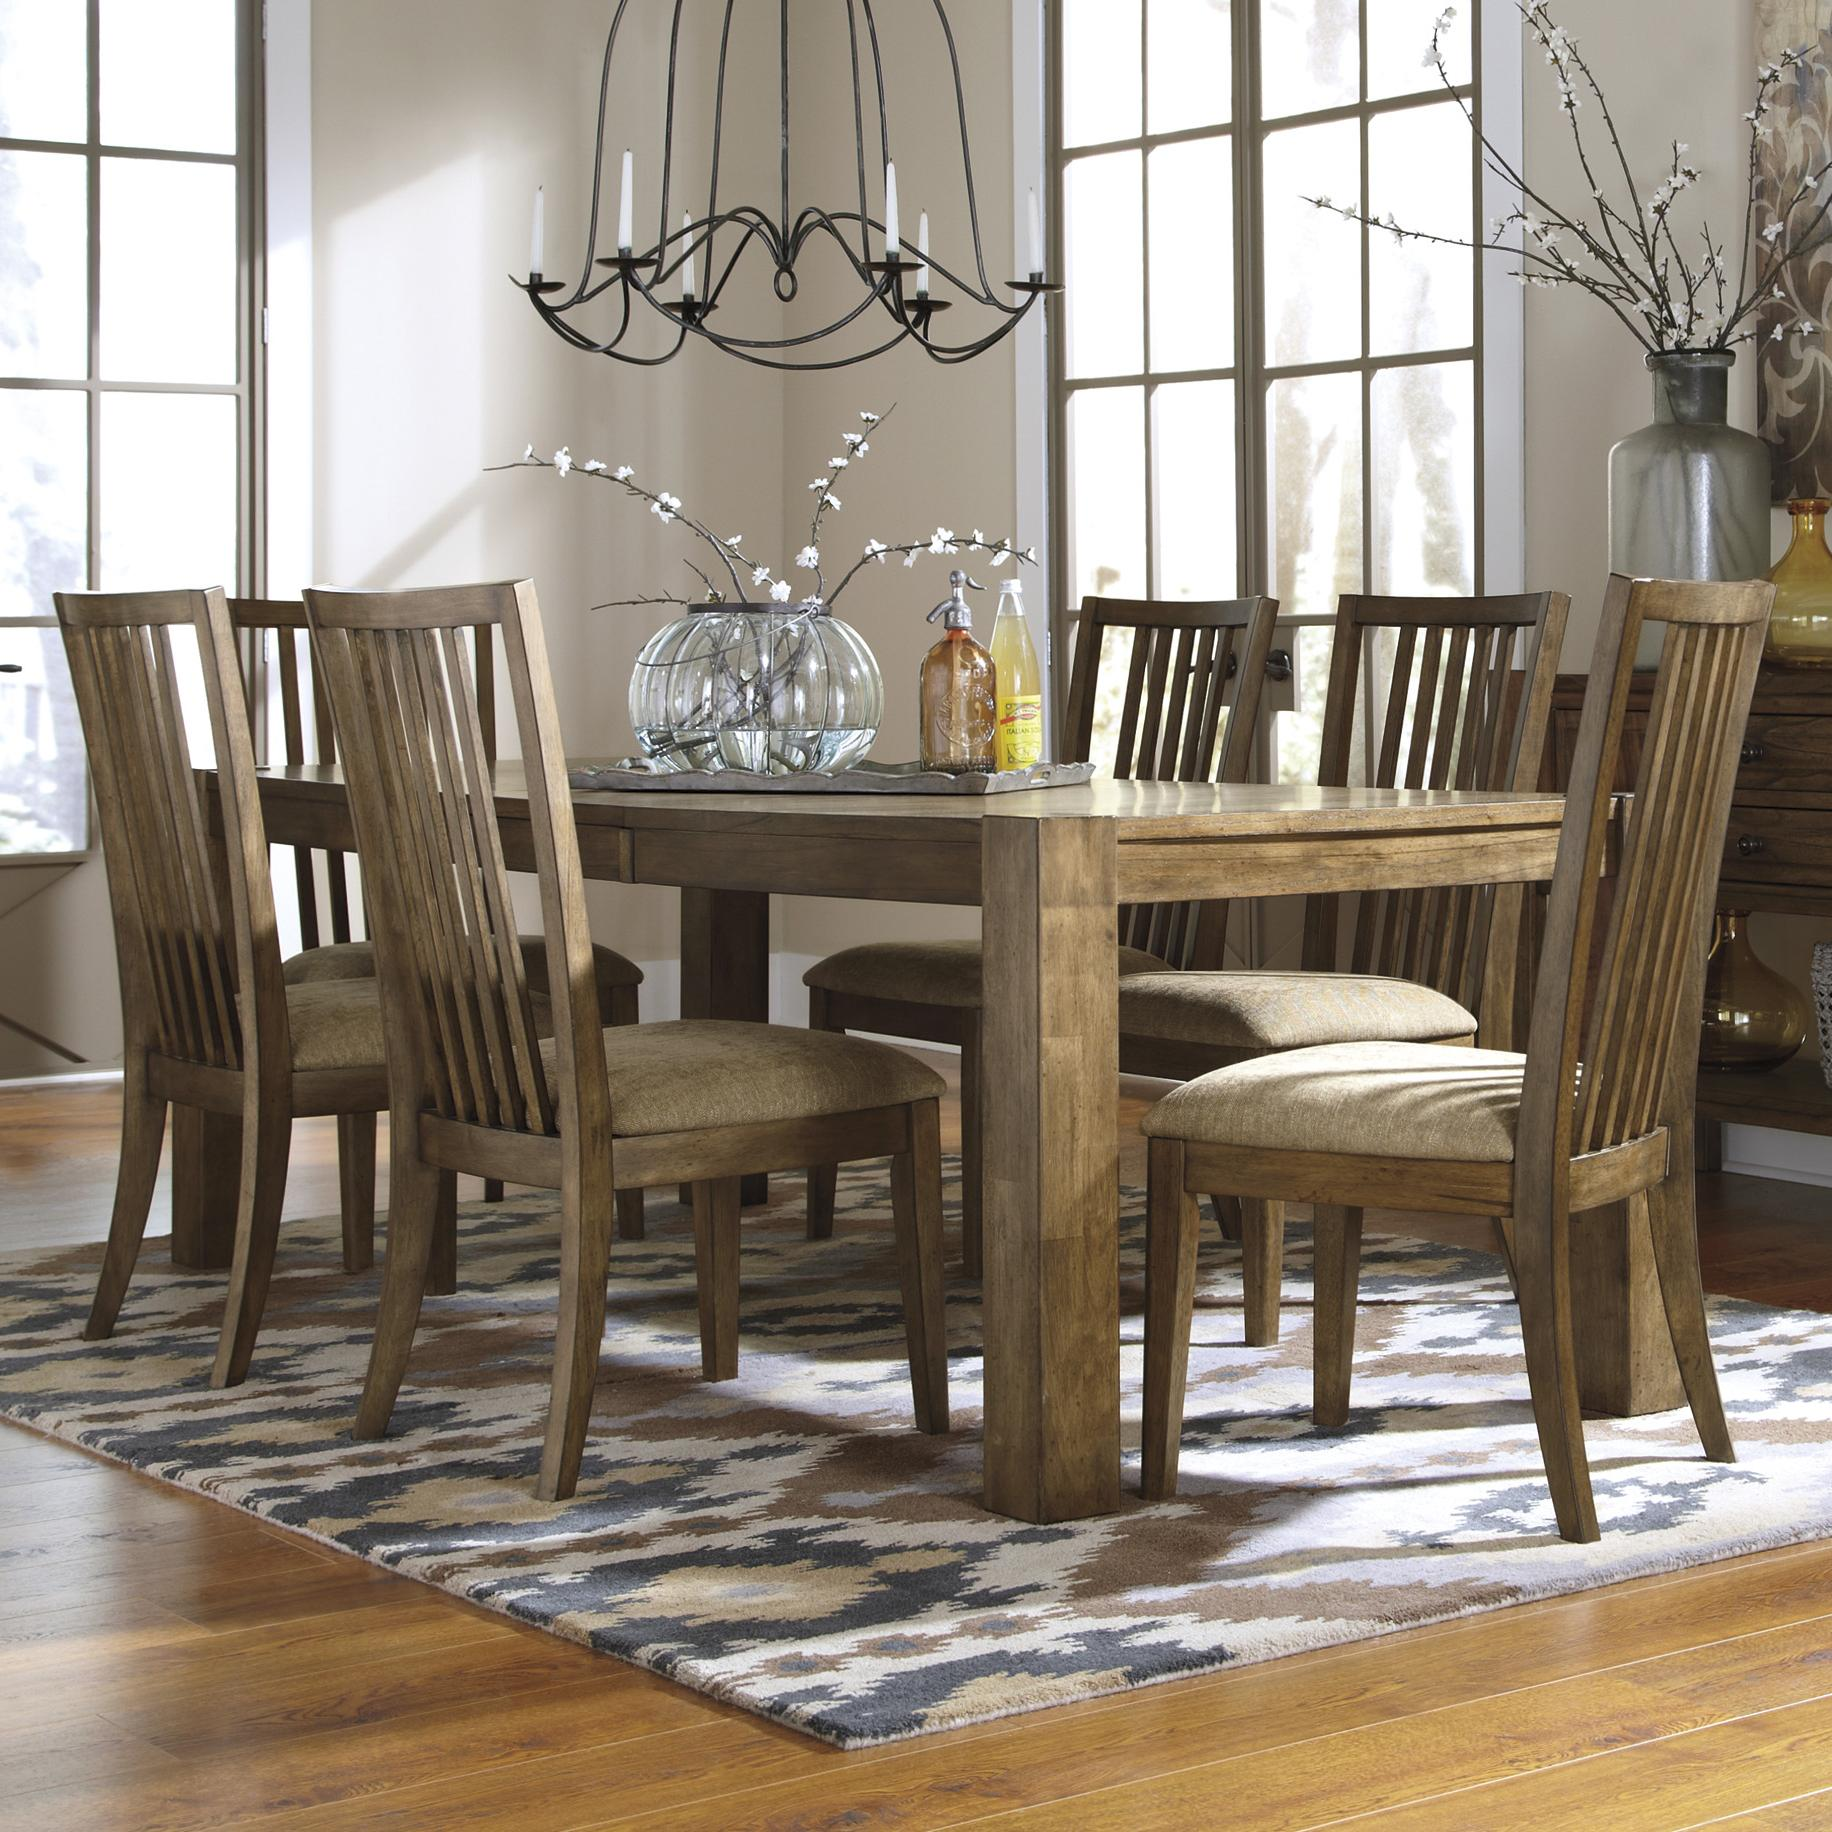 Signature Design by Ashley Birnalla 7-Piece Rectangular Extension Table Set - Item Number: D585-35+6x01